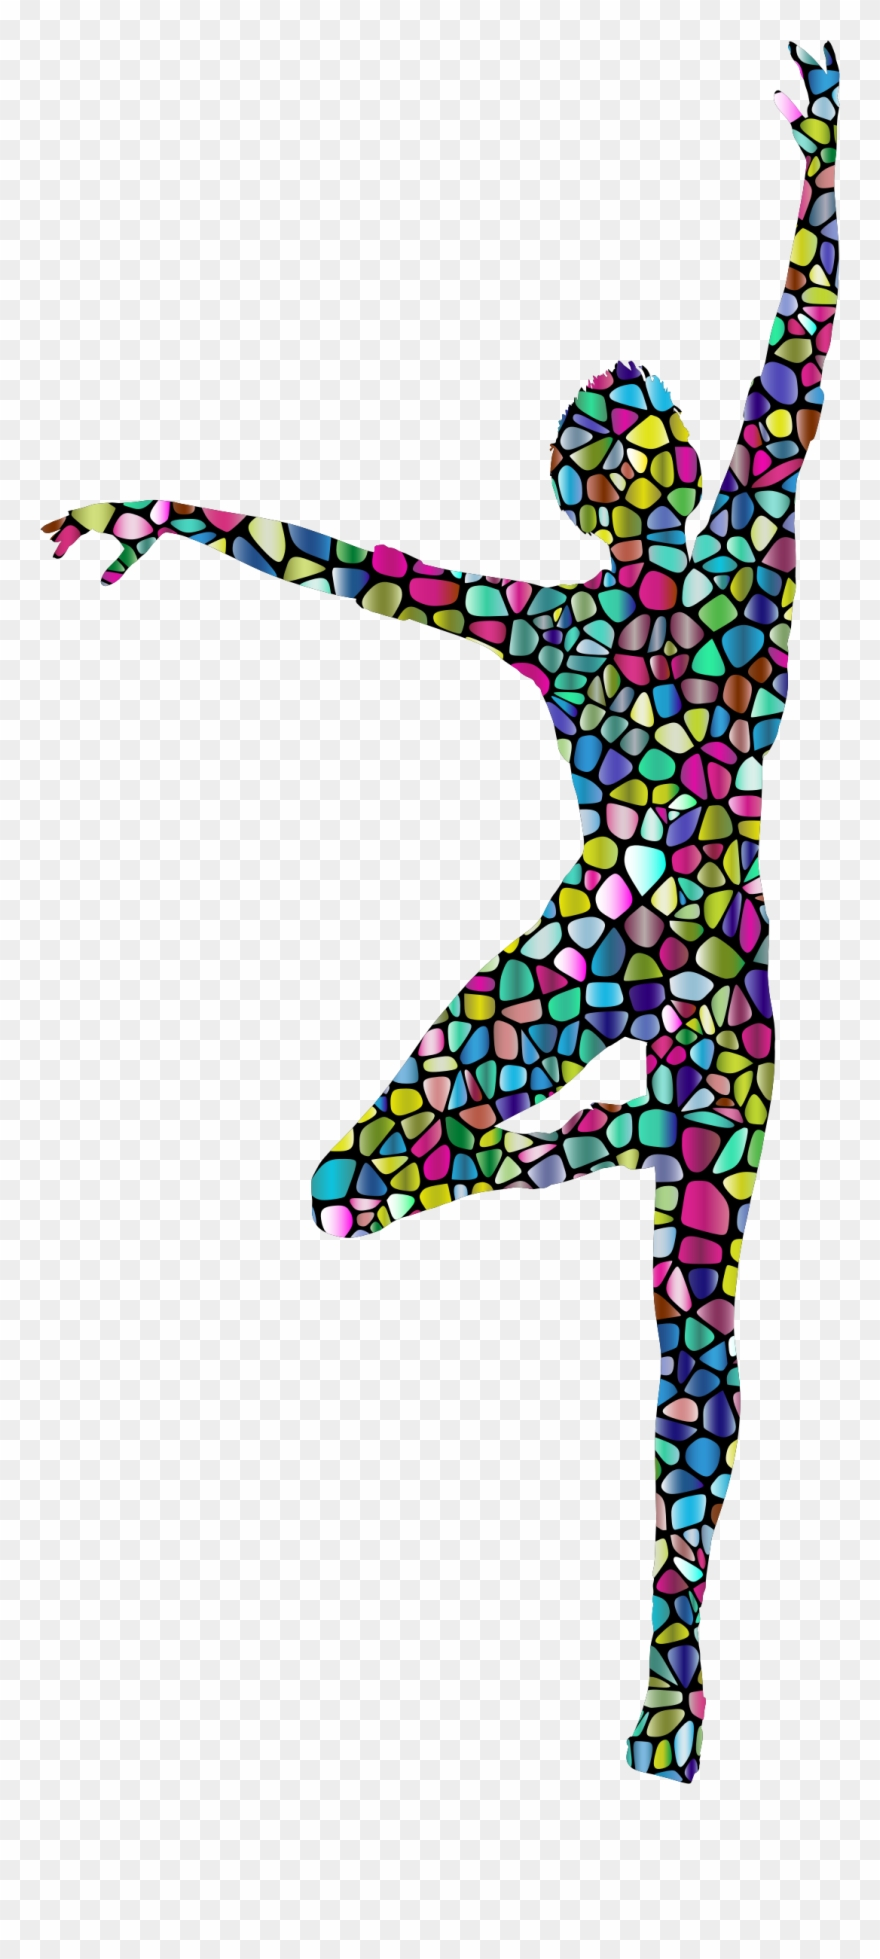 2 clipart silhouette no background clip royalty free Big Image - Dancing Silhouette Transparent Background Clipart ... clip royalty free